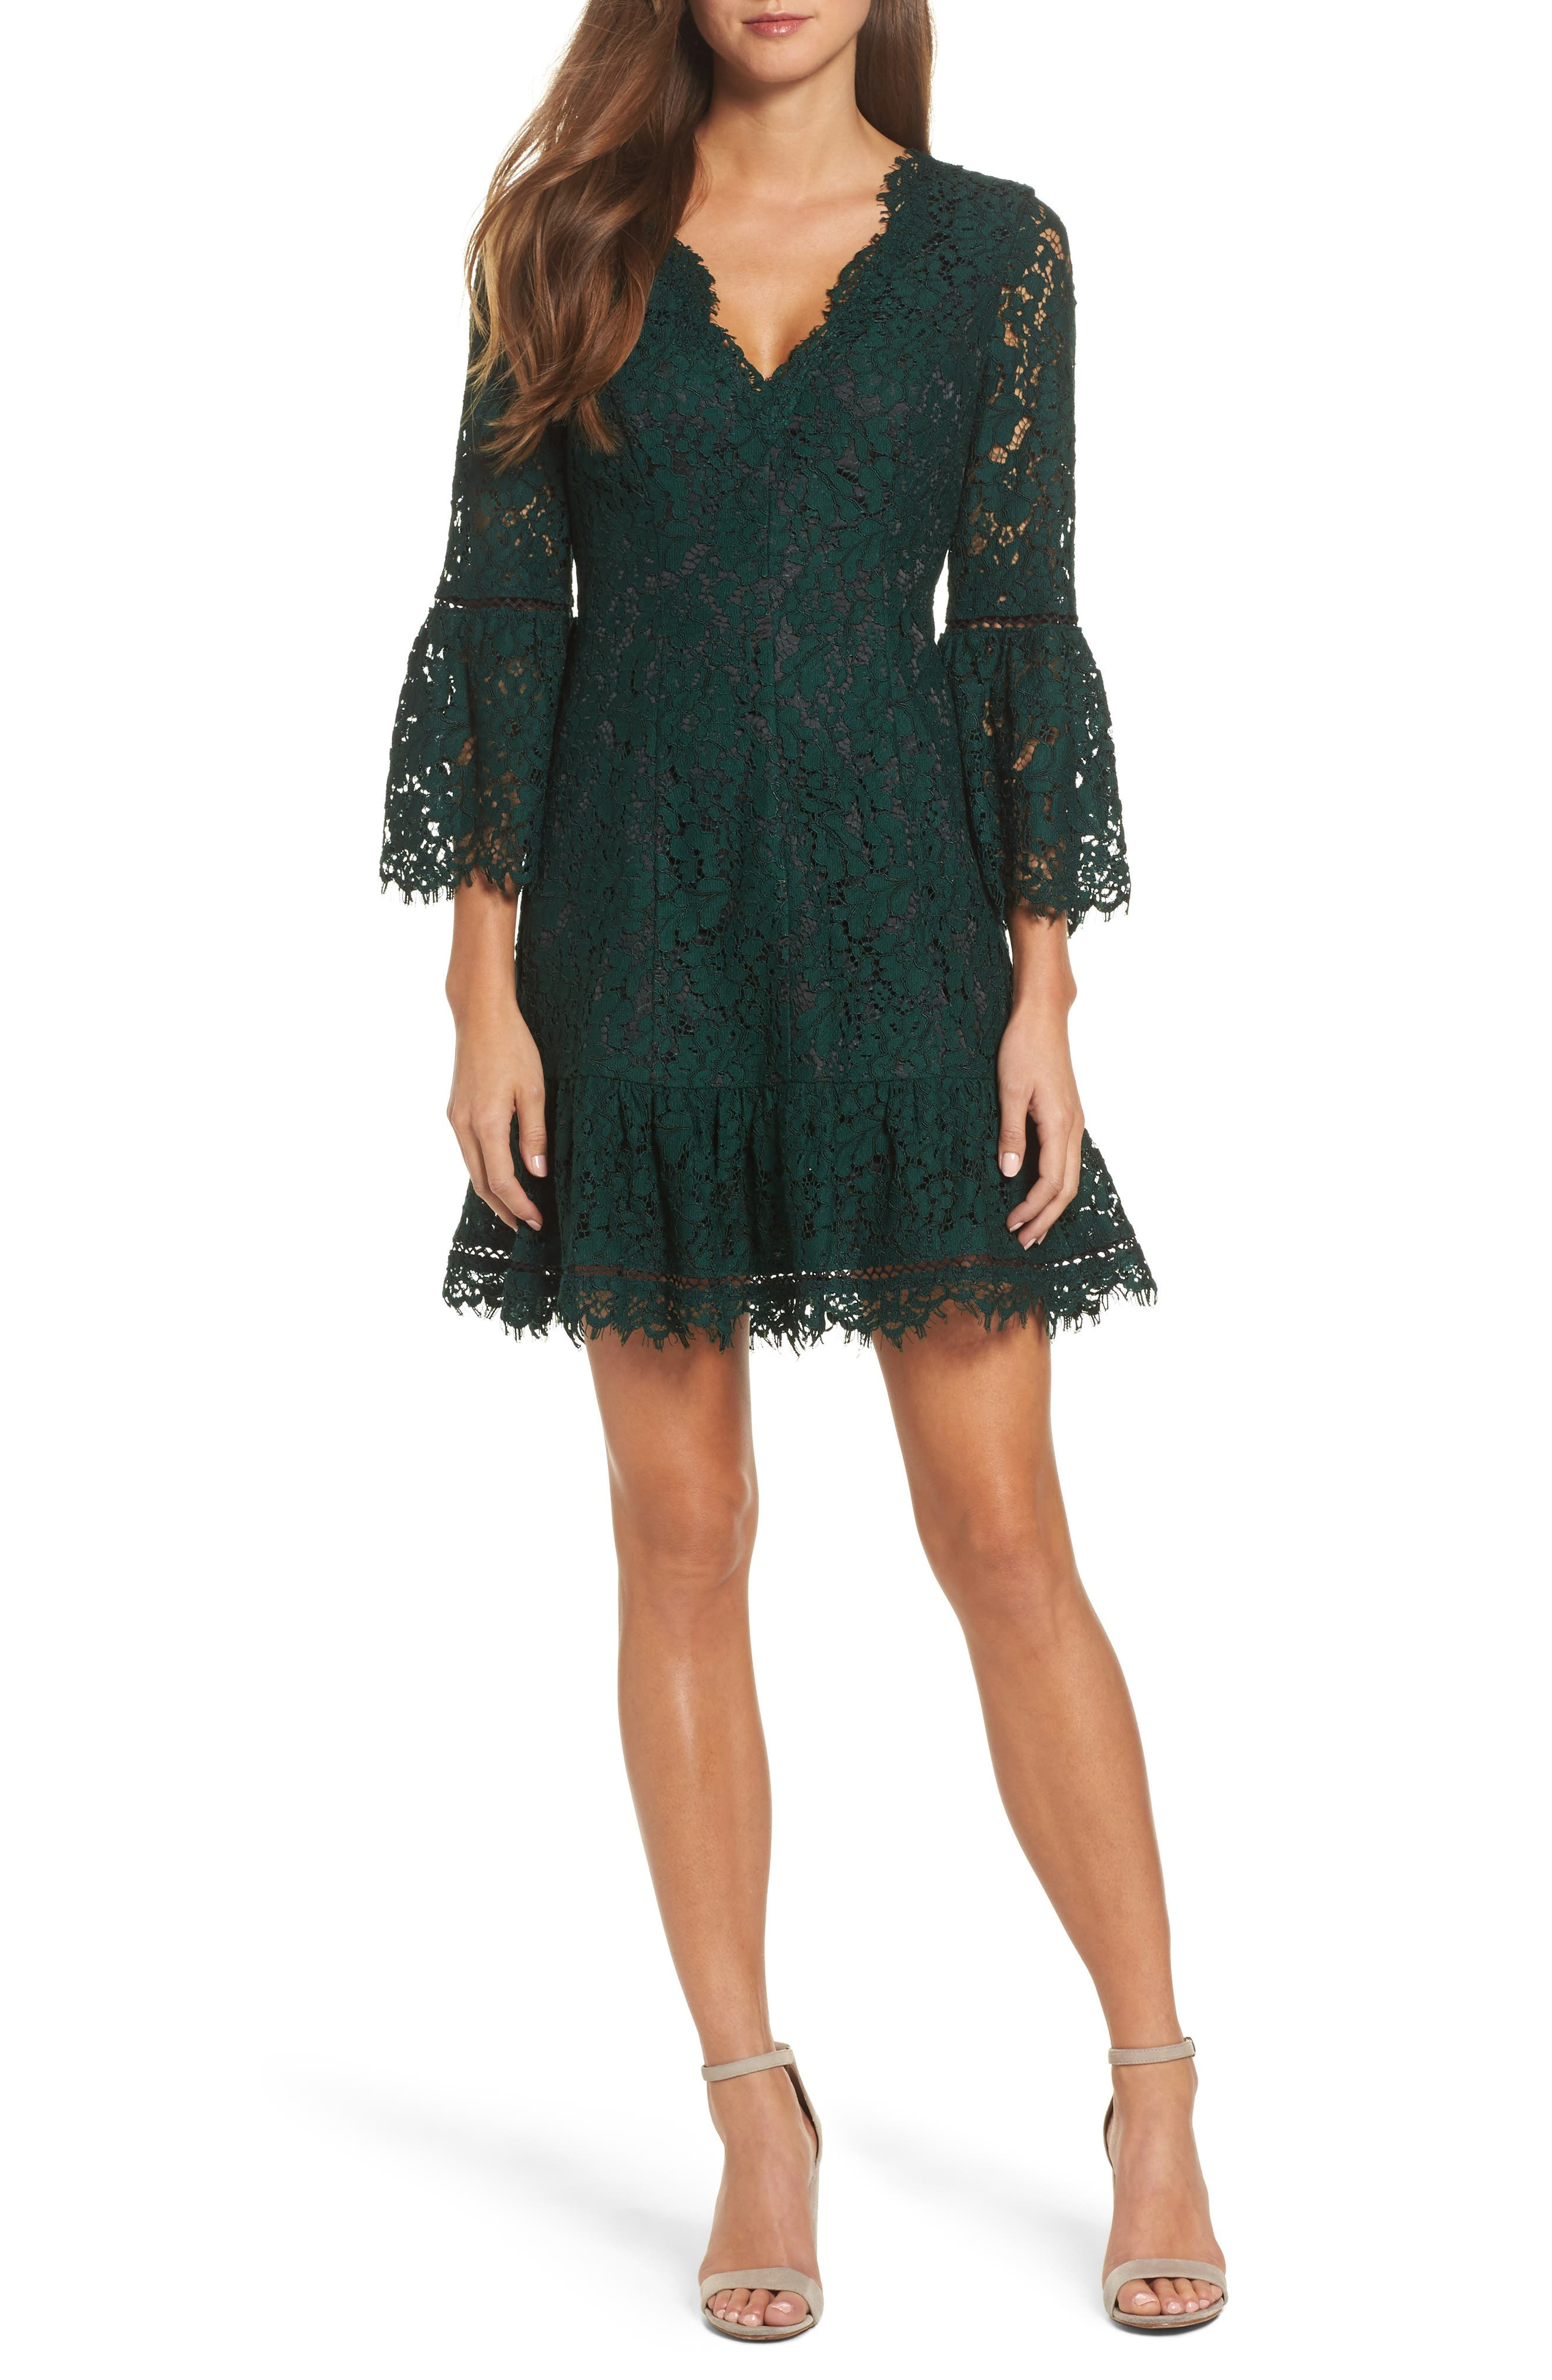 Bell Sleeve Lace Dress,                             Main thumbnail 1, color,                             Green/ Black